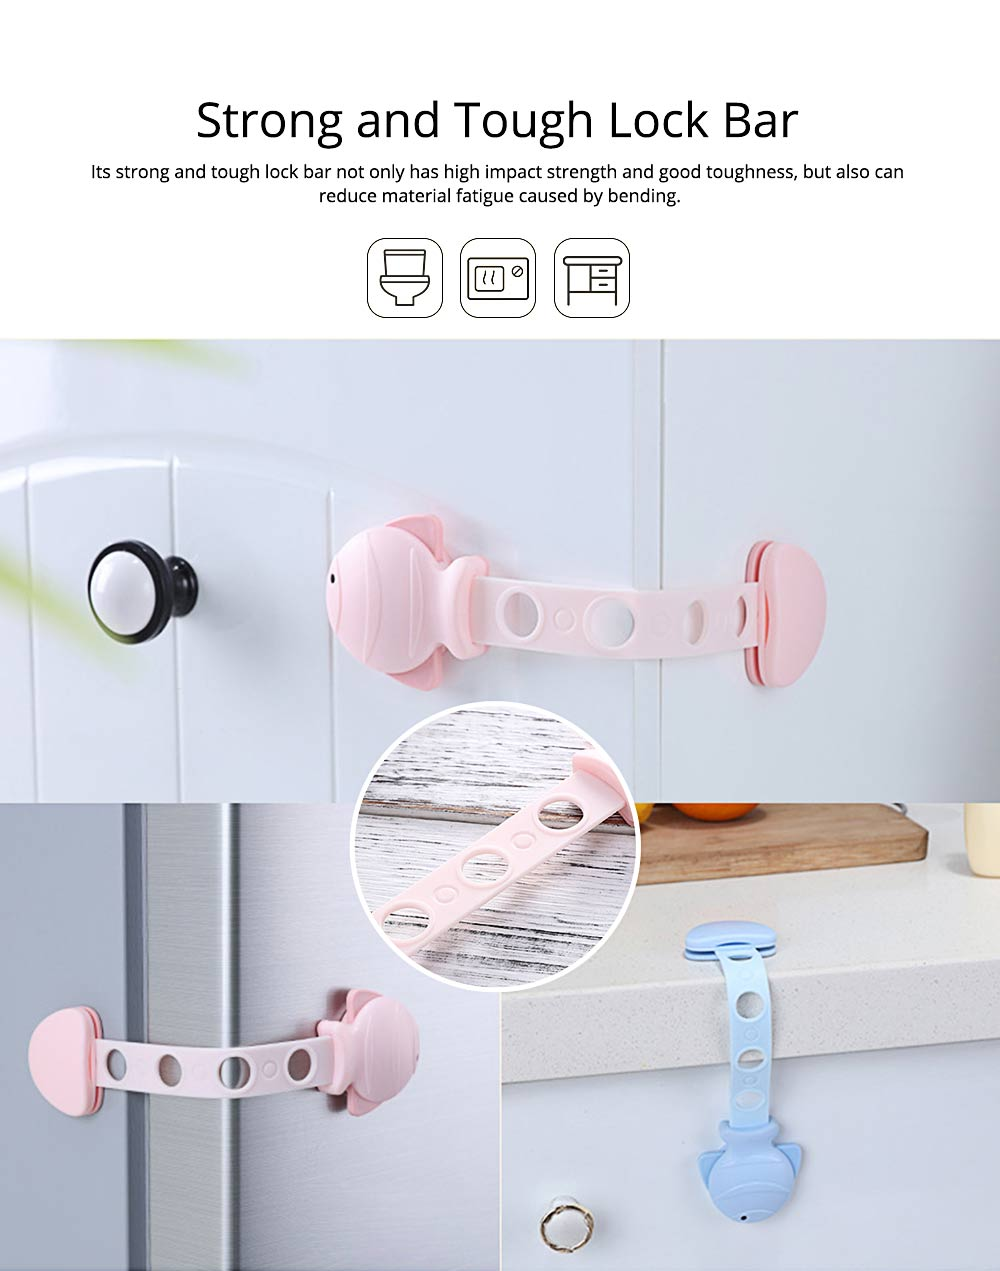 Children's Multifunctional Safety Lock, Anti-pinch Lock for Drawer, Cabinet Door, Refrigerator, Toilet 5